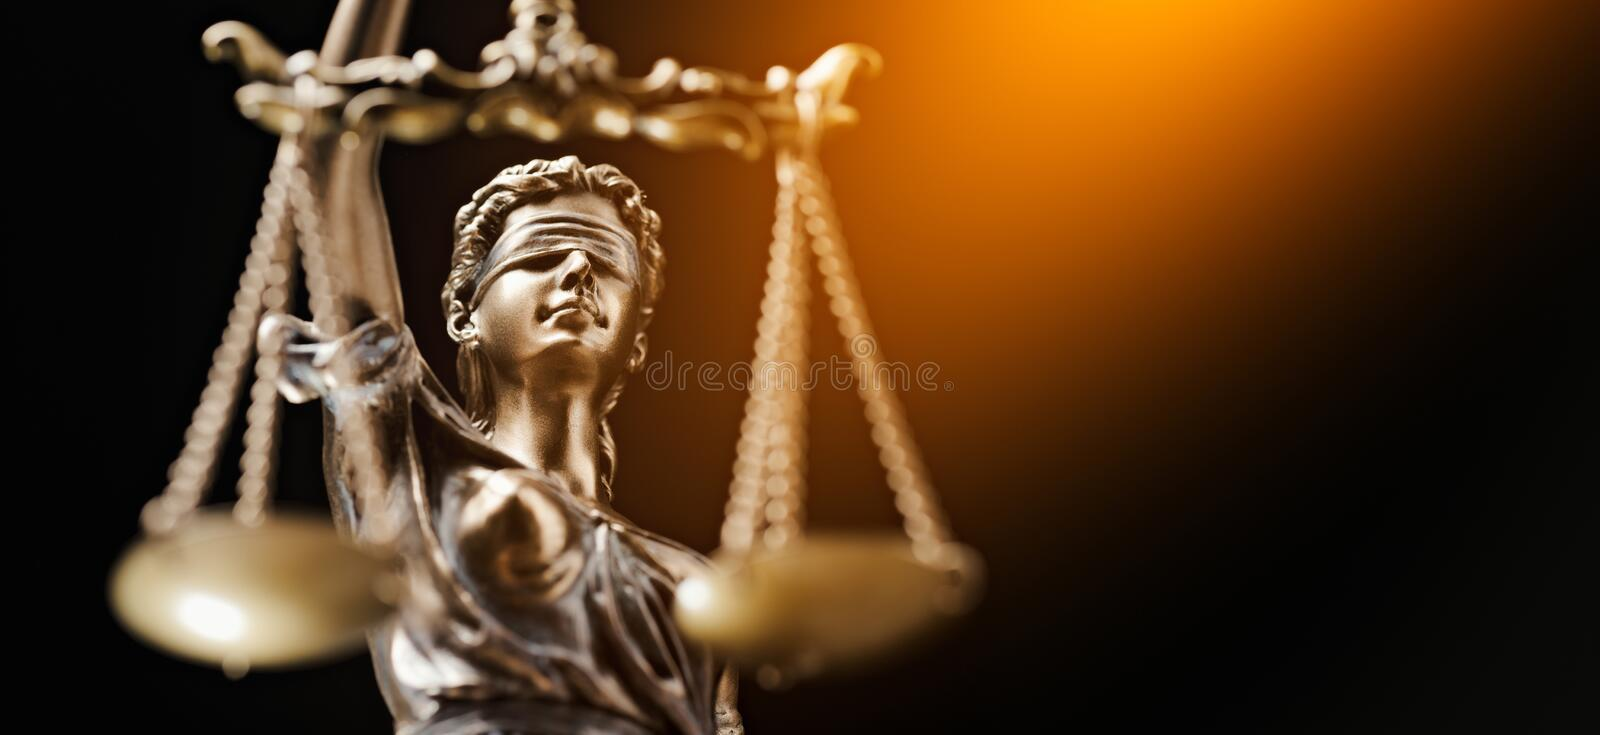 Advogado Business Concept de Themis Statue Justice Scales Law foto de stock royalty free